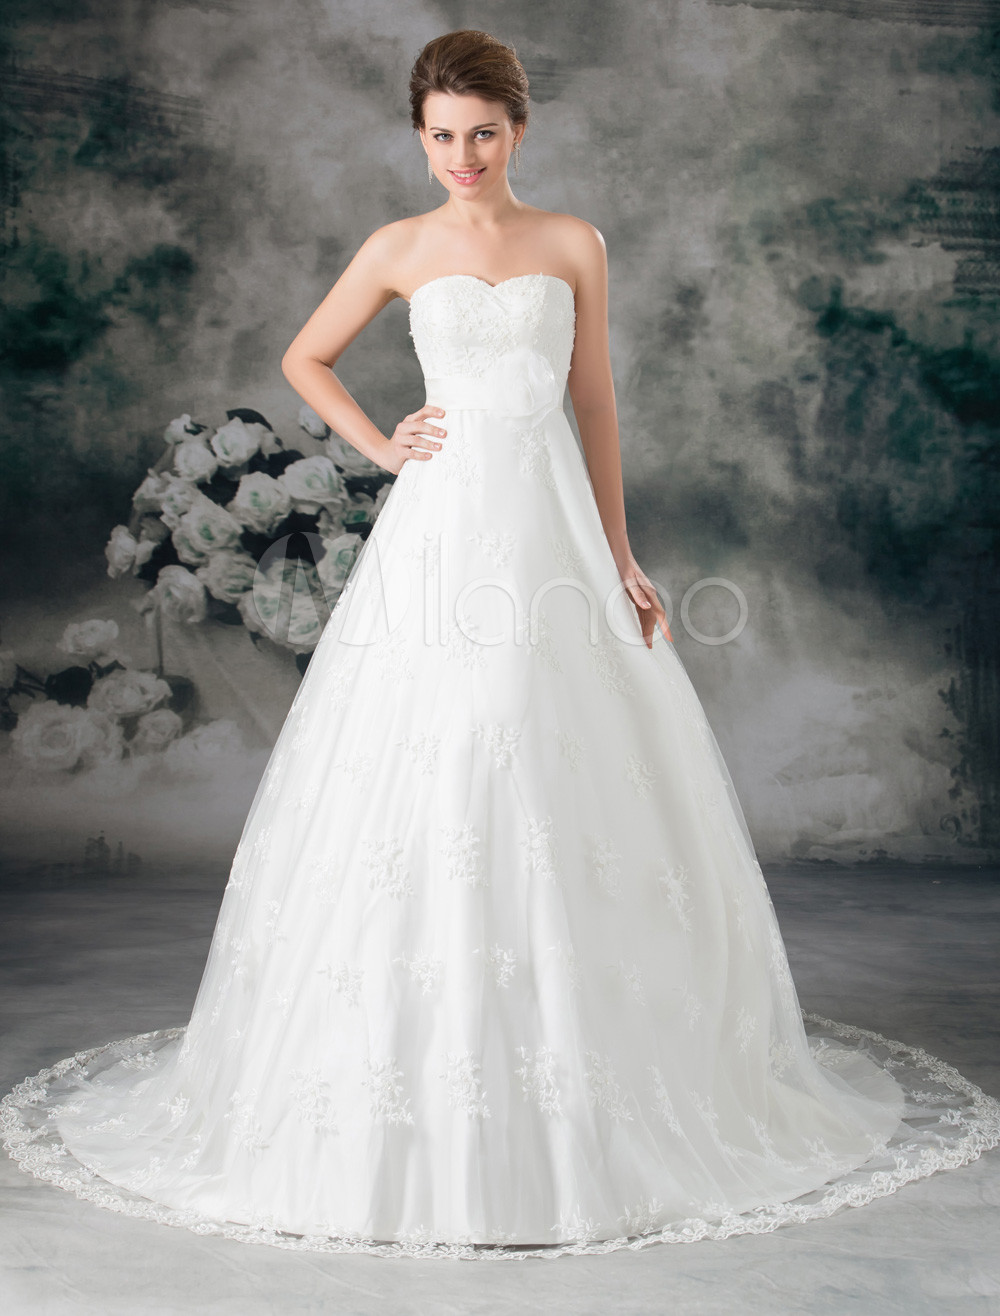 Ivory Ball Gown Sweetheart Neck Flower Lace Wedding Dress For Bride ...